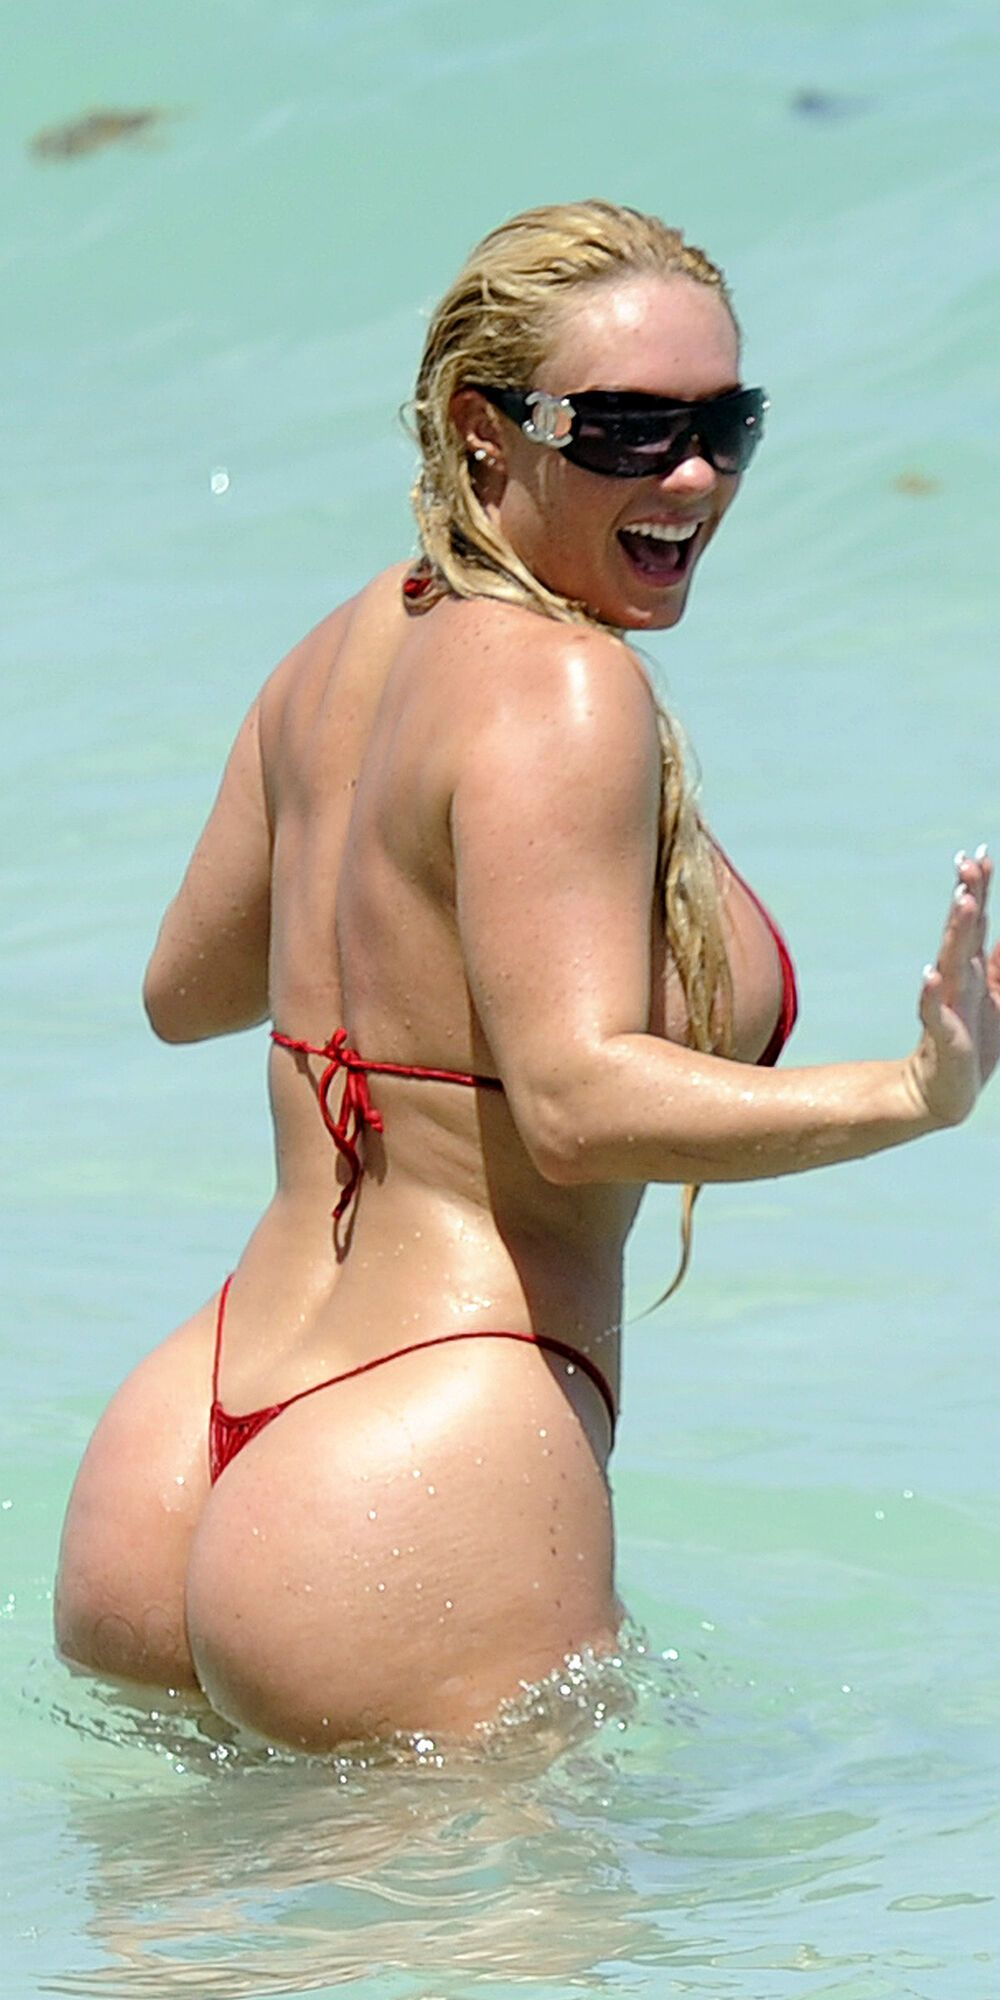 nicole-austin-red-bikini-miami-toying